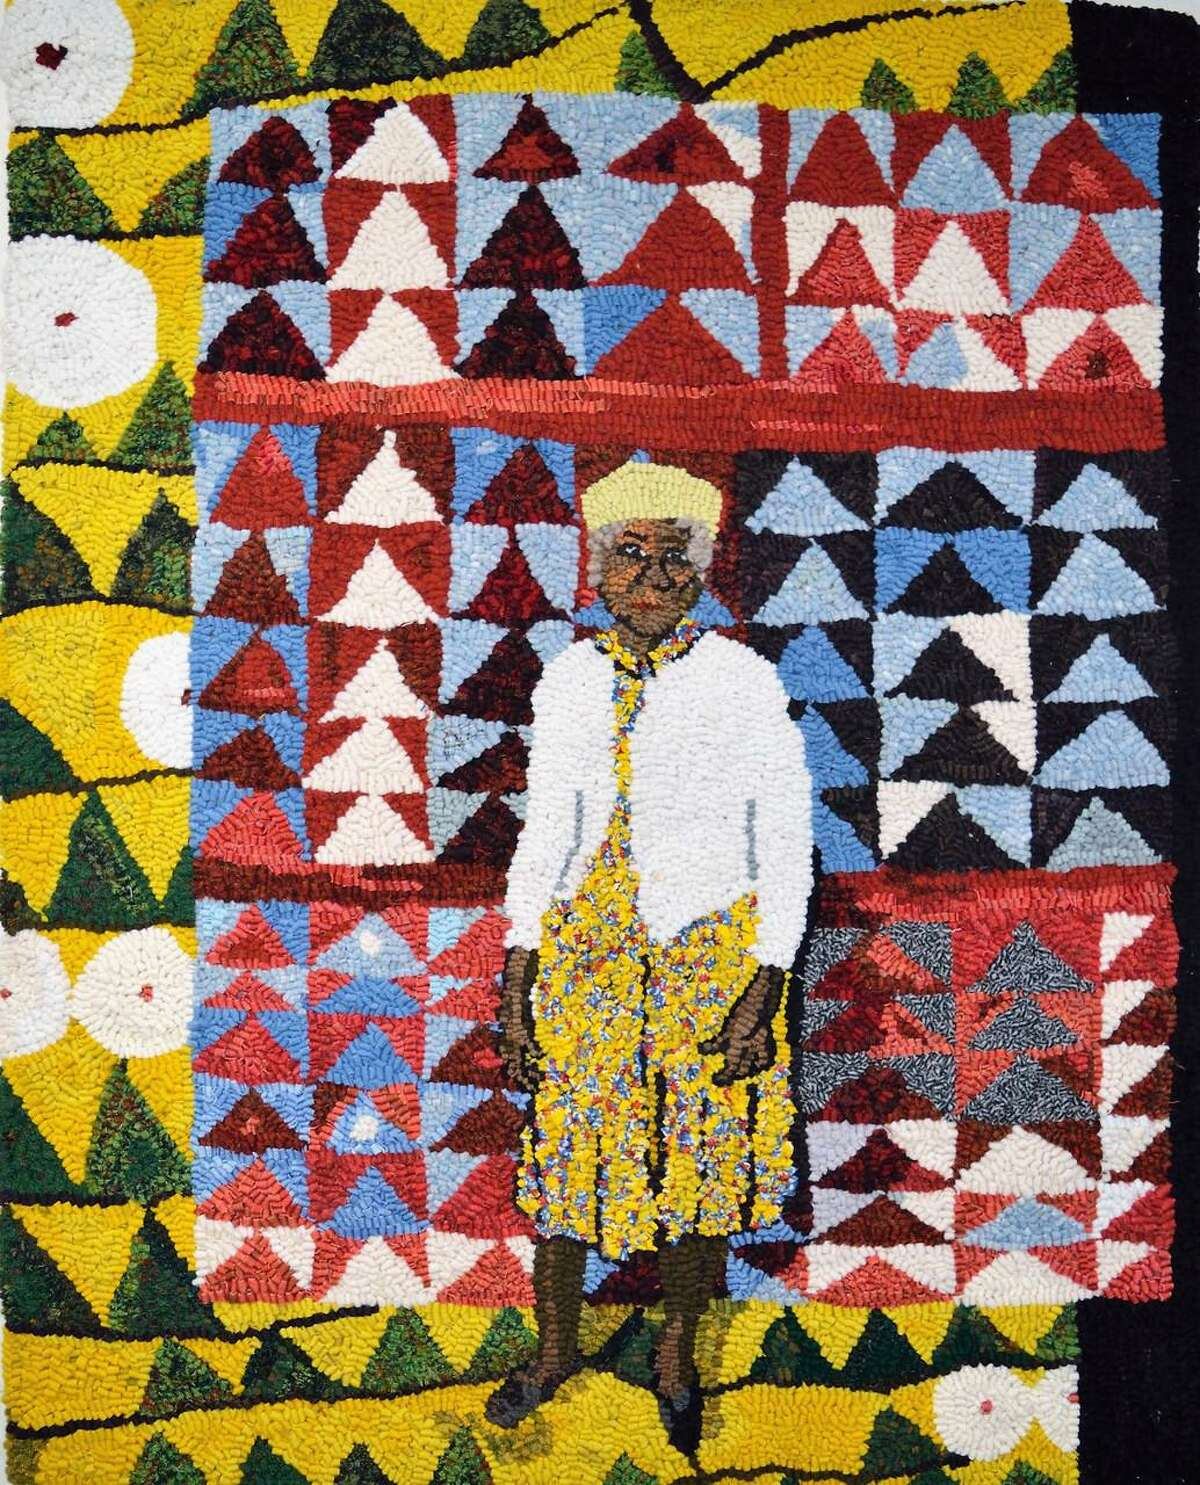 Mary Tooley Parker's Annie E. Pettway, Gee's Bend Quilter in Klimt